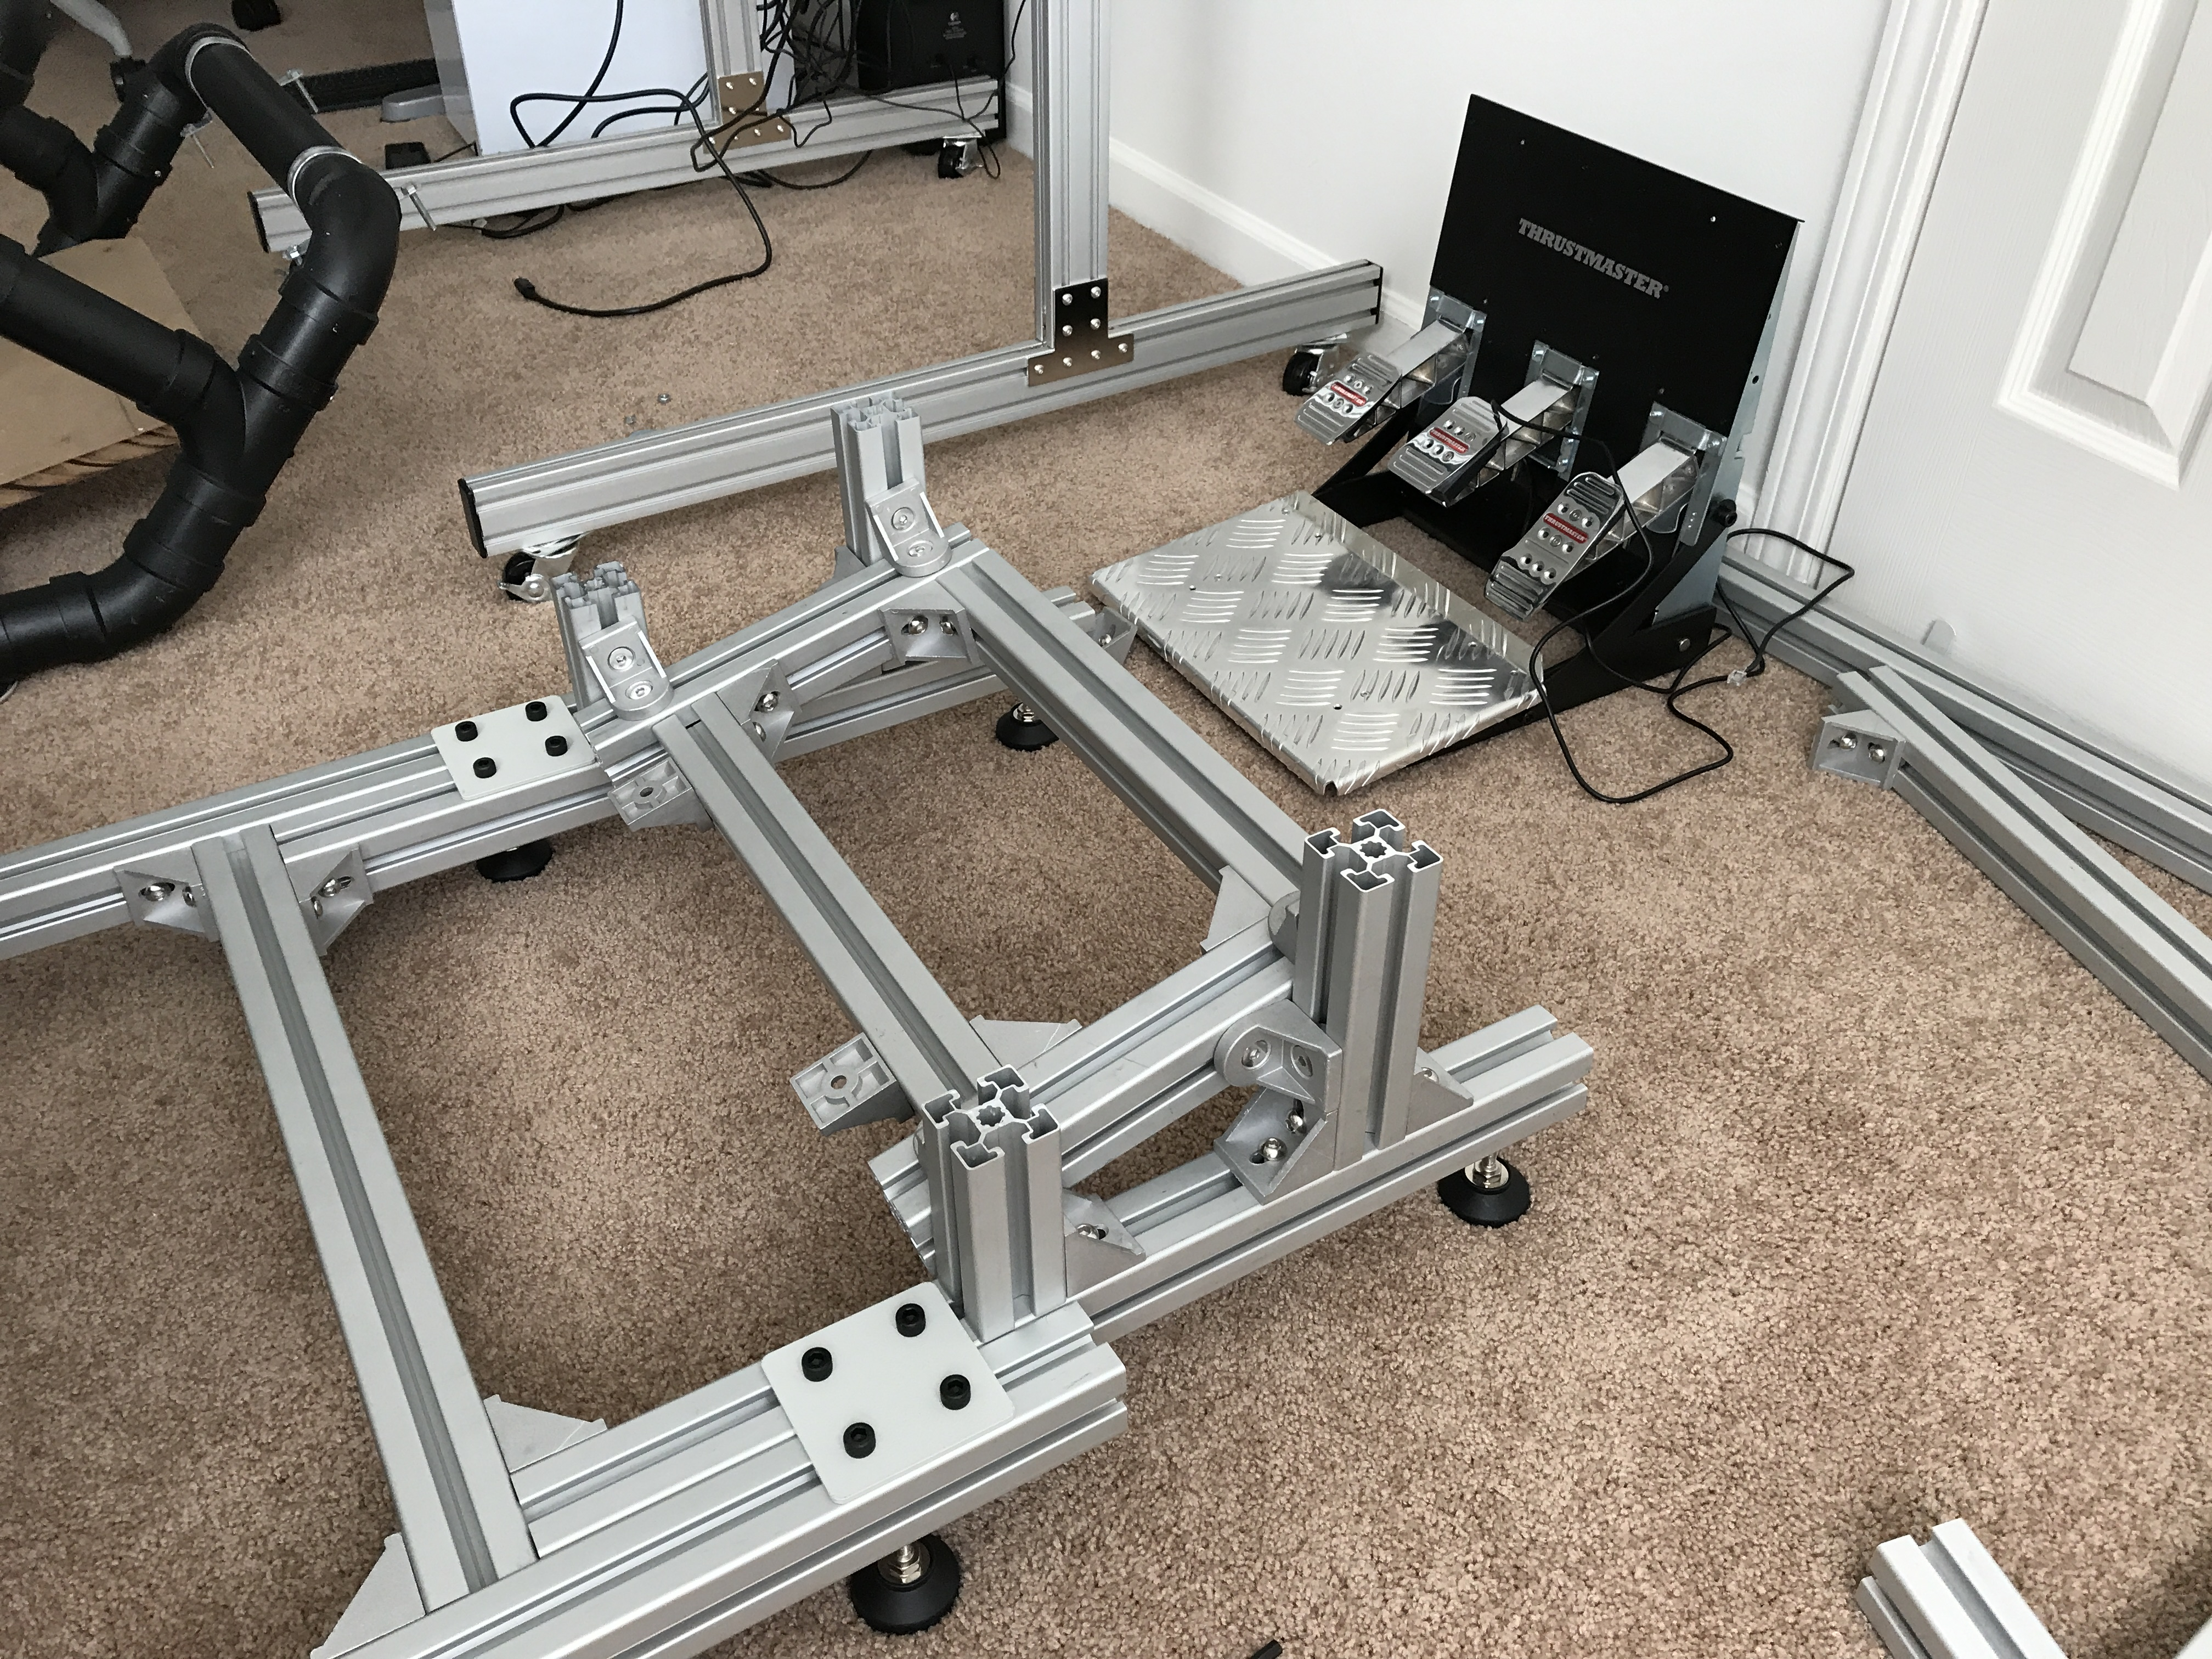 8020 rig build  and question on wheel mounting solution